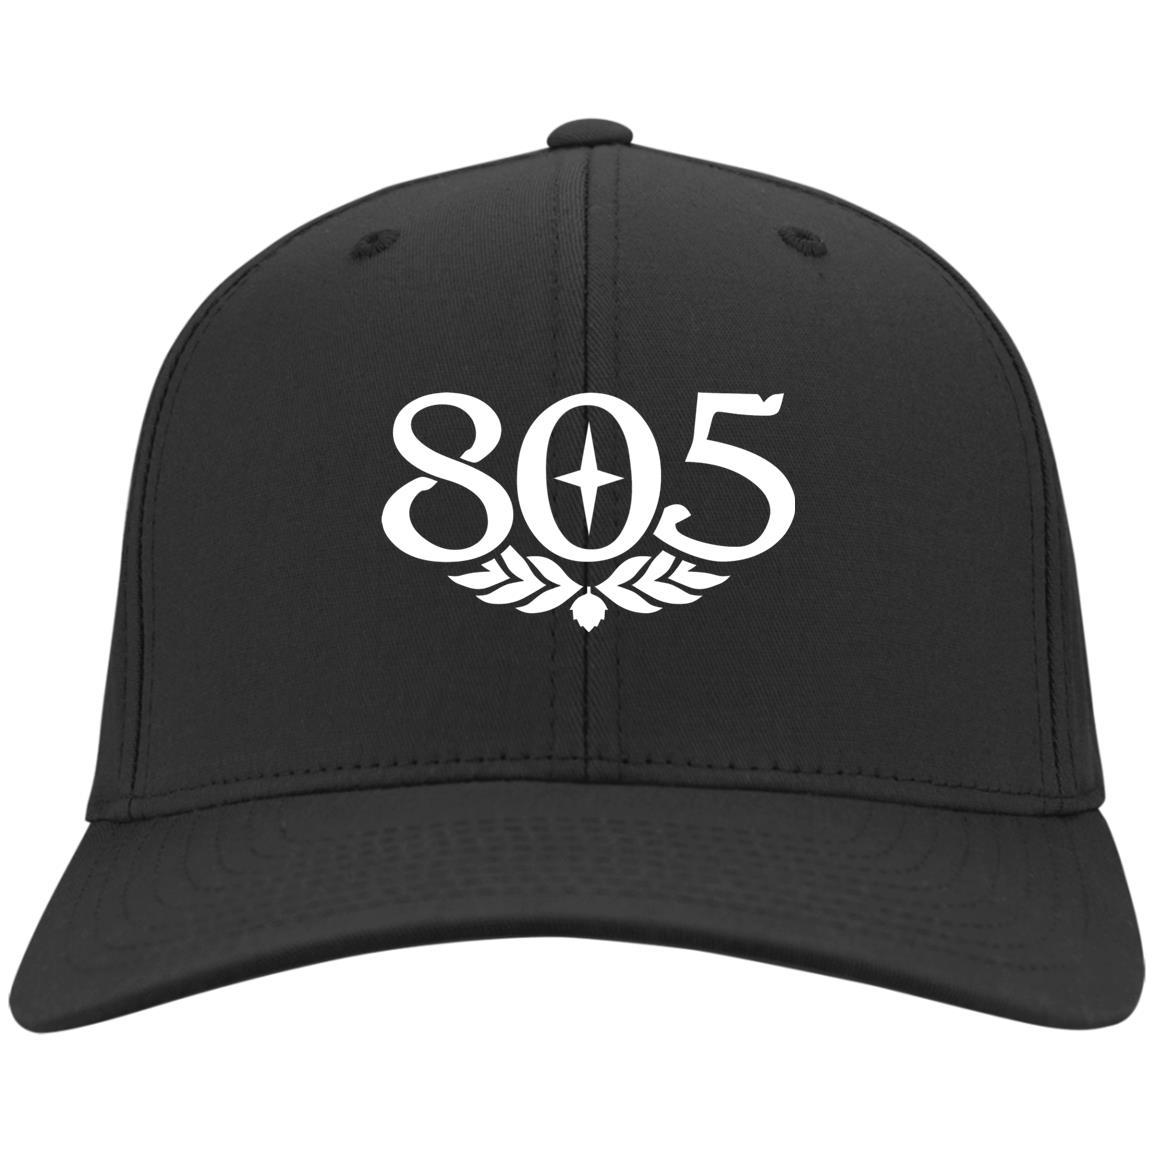 805 Beer - Port & Co. Twill Cap Black